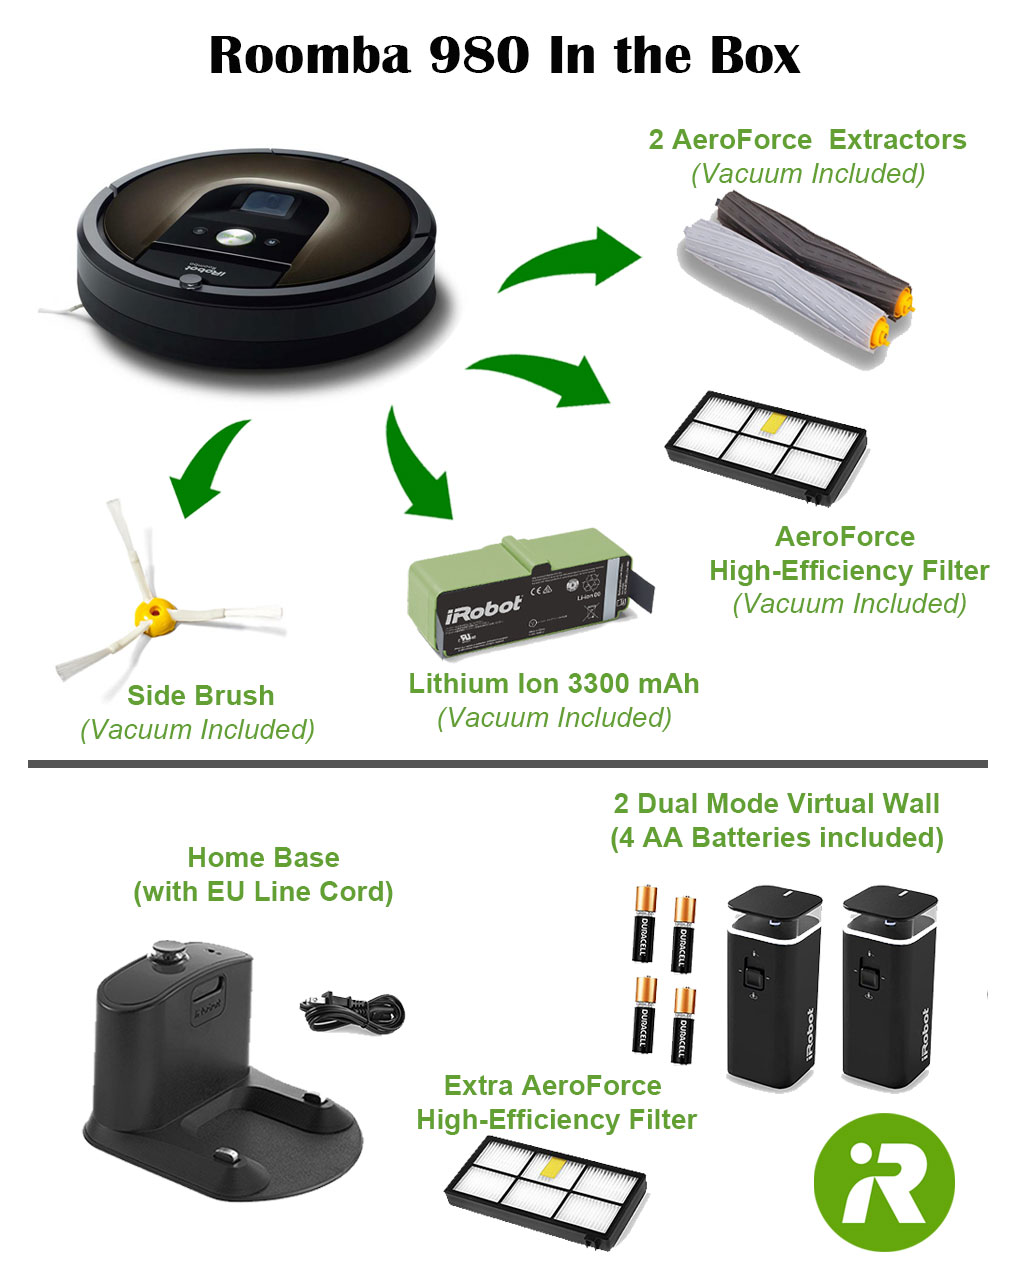 roomba 980 in the box